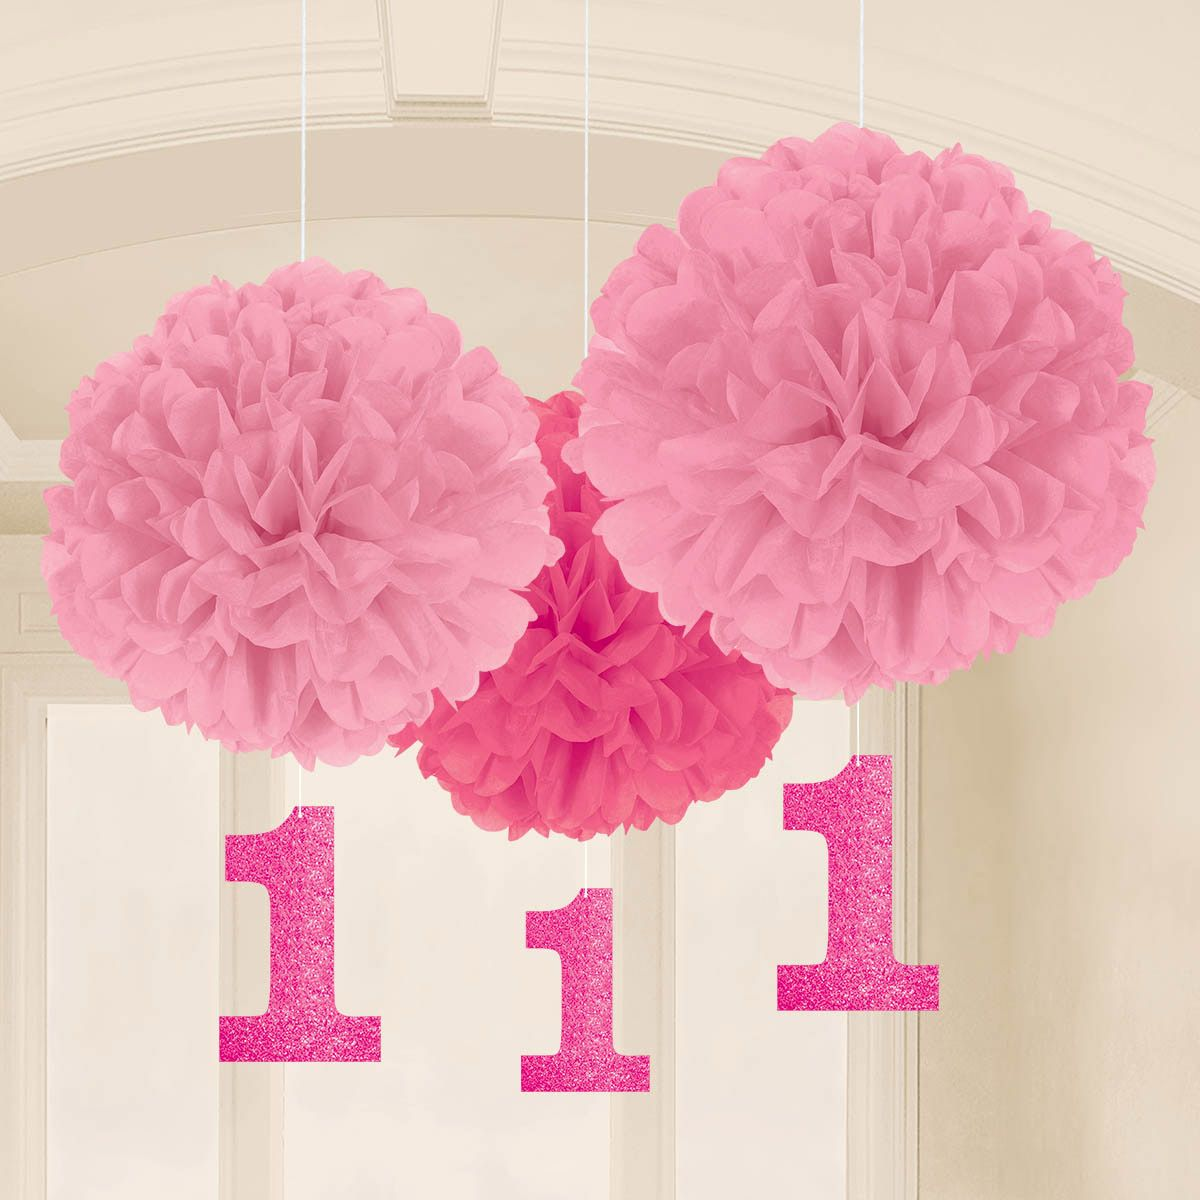 1st birthday pink fluffy hanging decorations 16 pack for 1st birthday decoration packs